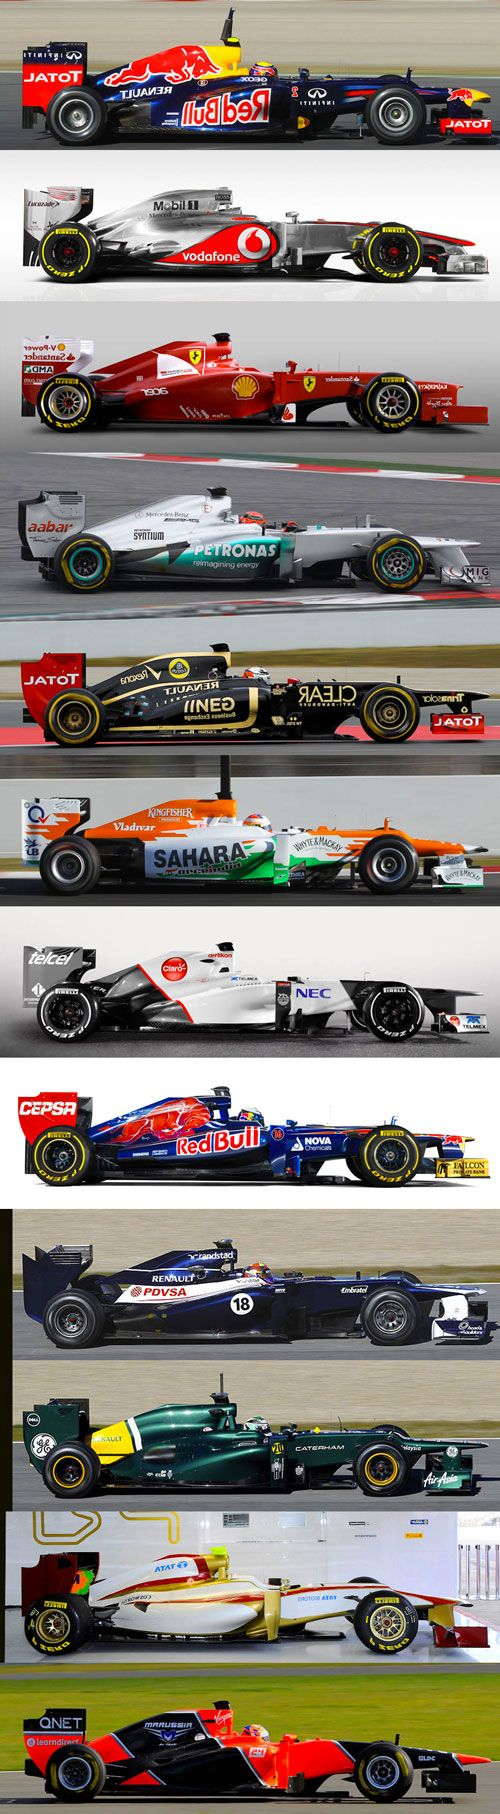 The set of teams during 2012, which made one of the greatest F1s seasons !! http://www.wallpapershds.net/most-popular-wallpapers/